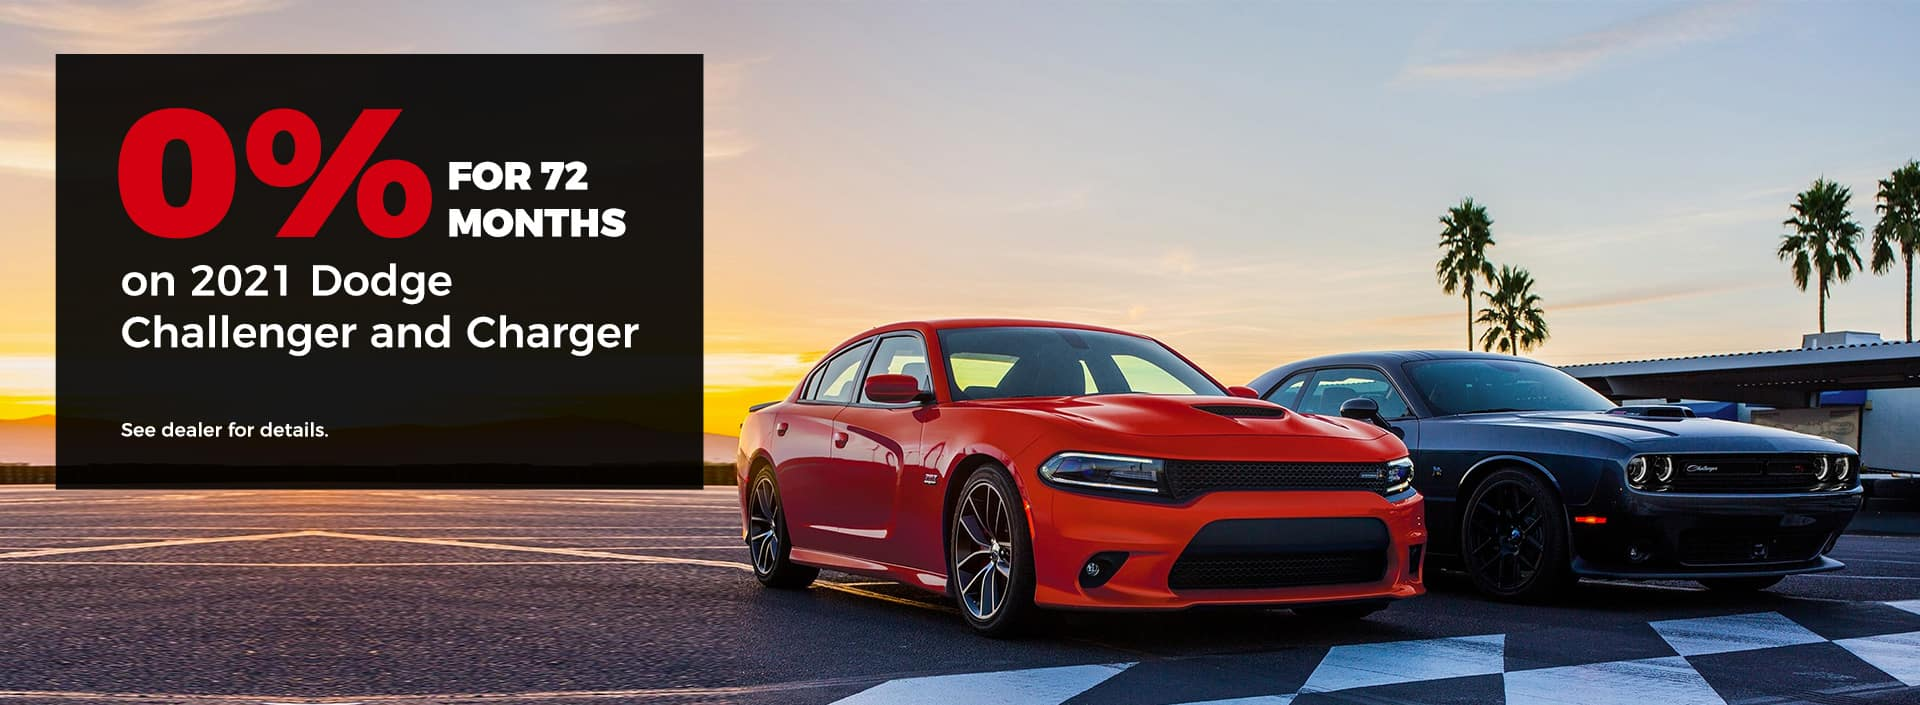 0% for 72 months on 2021 Dodge Challenger and Charger